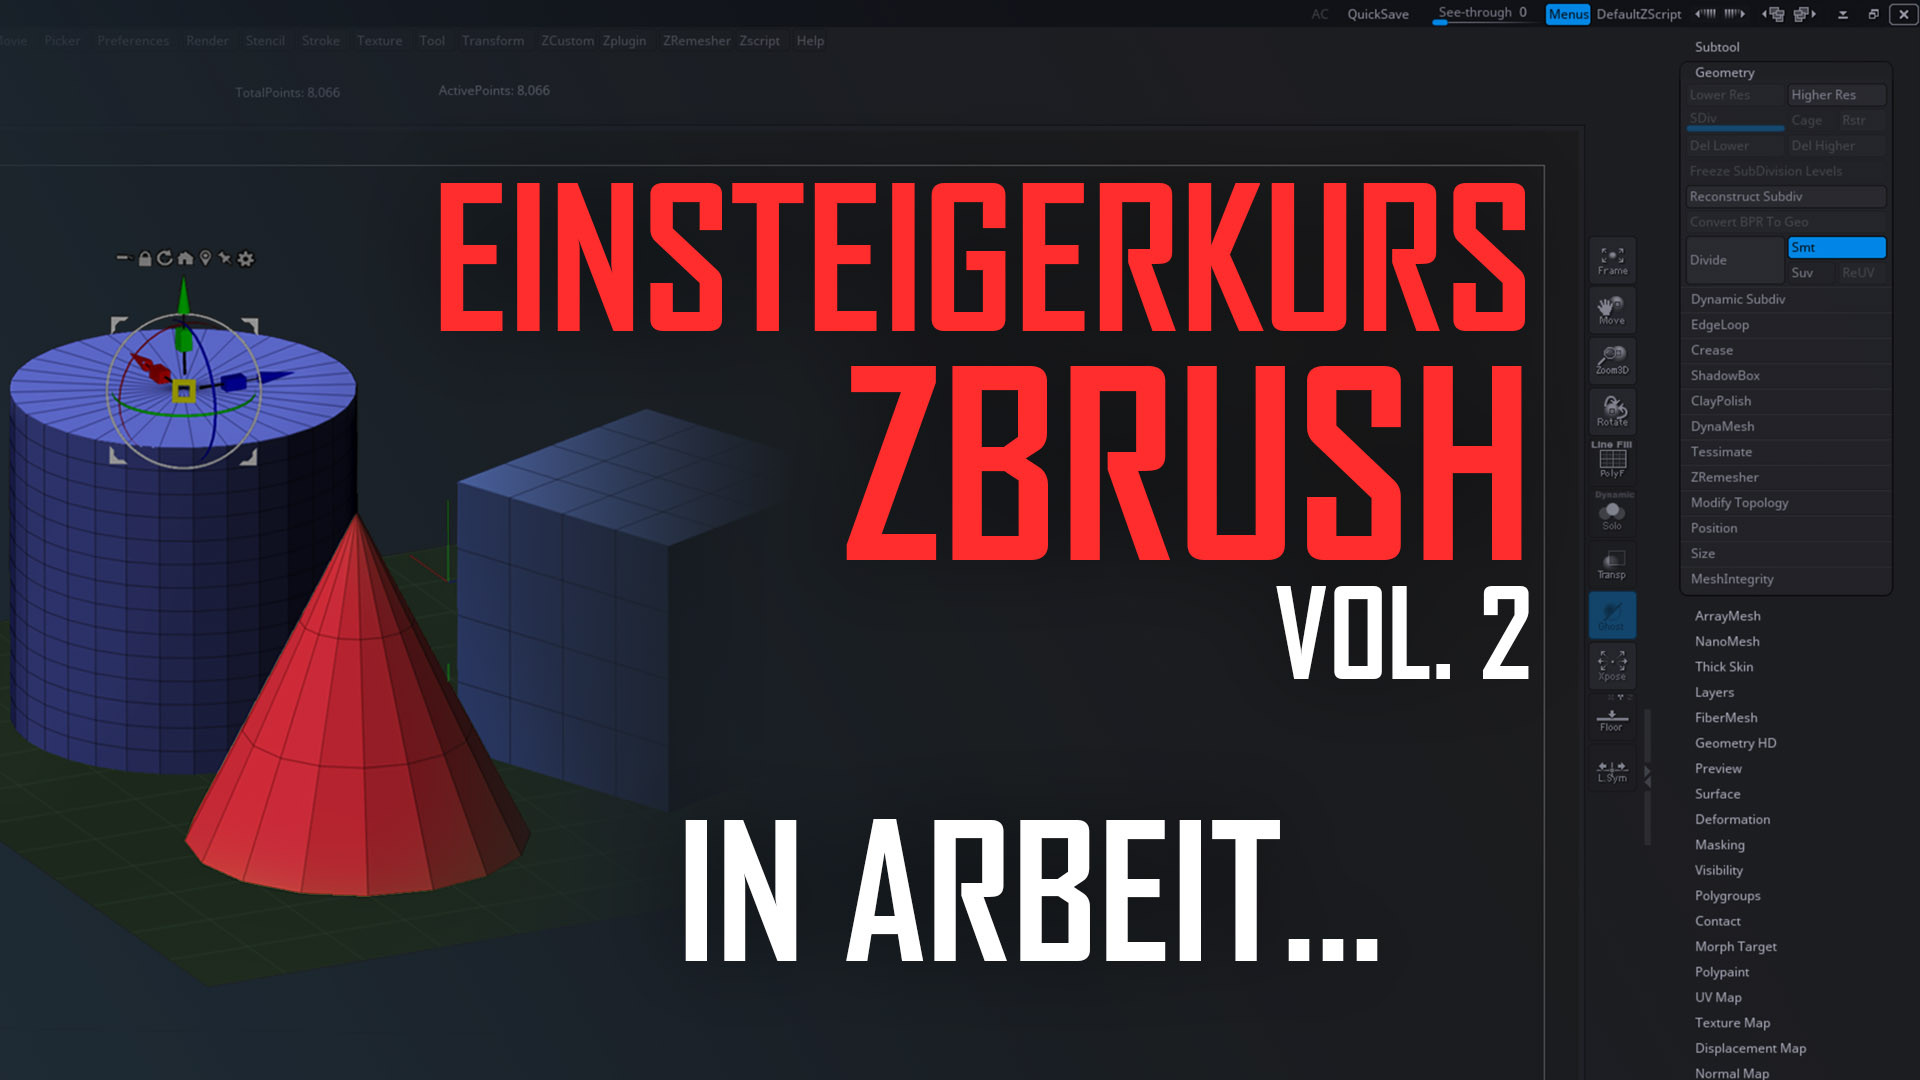 Einsteigerkurs_Vol2_Preview.jpg